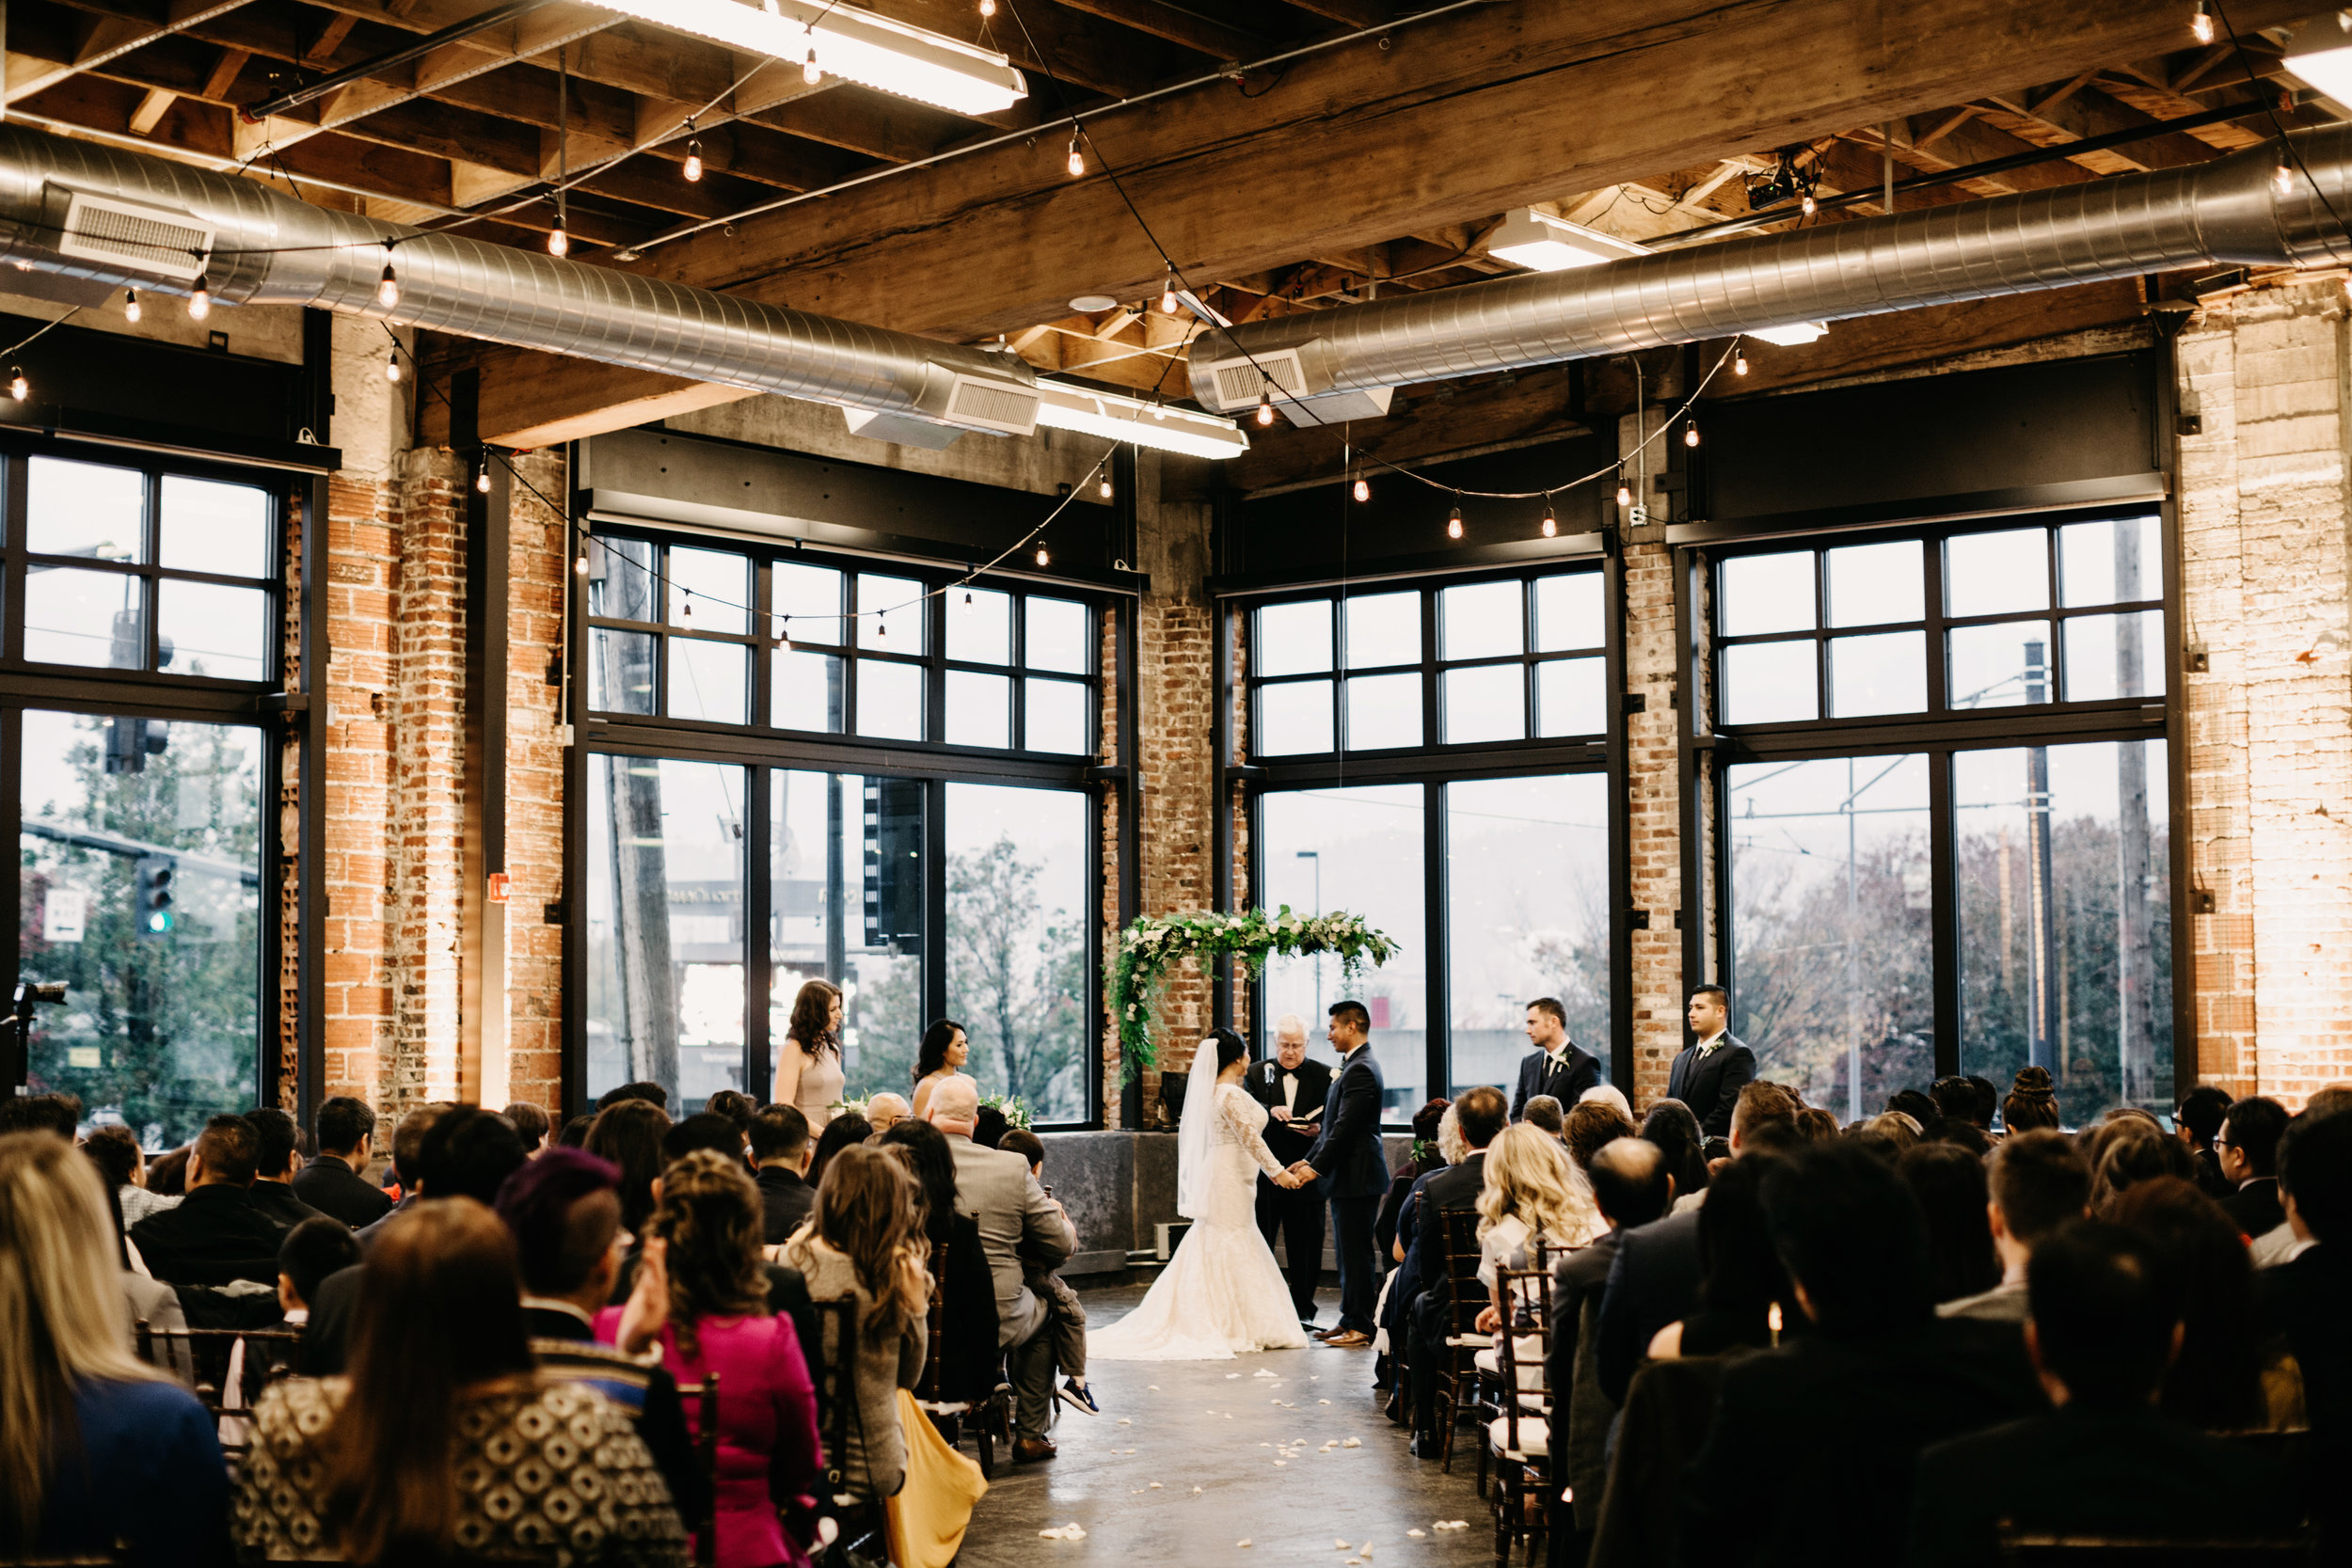 Indoor  : natural light coming from a window is ideal for indoor ceremonies, avoid mixed lighting by turning off indoor lights if possible so that the ceremony doesn't look like a mix of lots of blue and yellow! If you can't use natural light only, make sure the indoor lights are bright so that the photos can have the best quality possible!